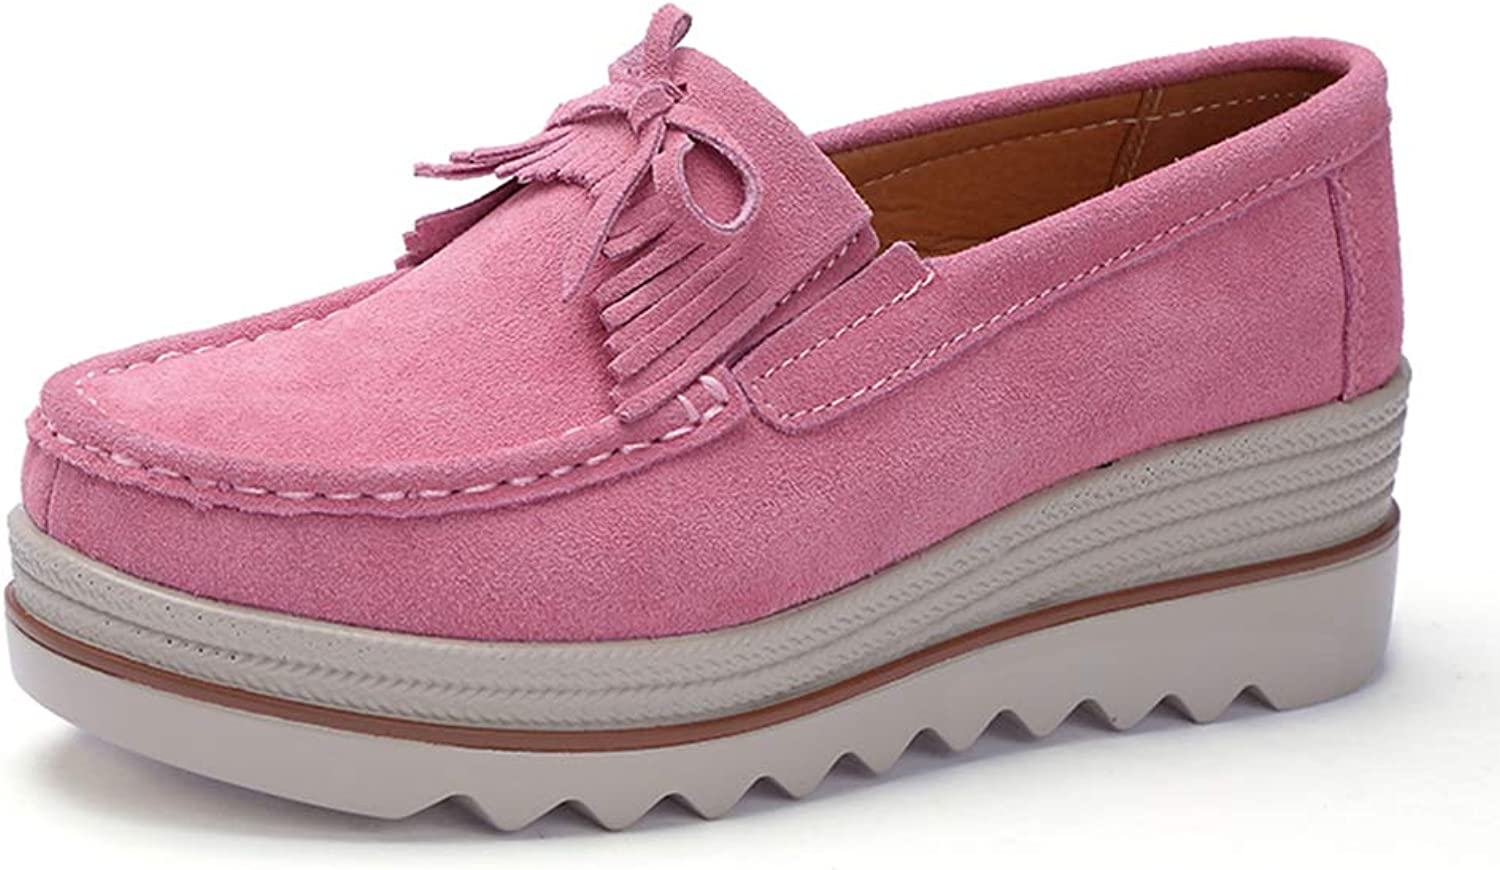 Ruiatoo Women Platform Slip On Loafers Comfort Genuine Suede with Tassel Wedge shoes Low Top Moccasins Pink 36